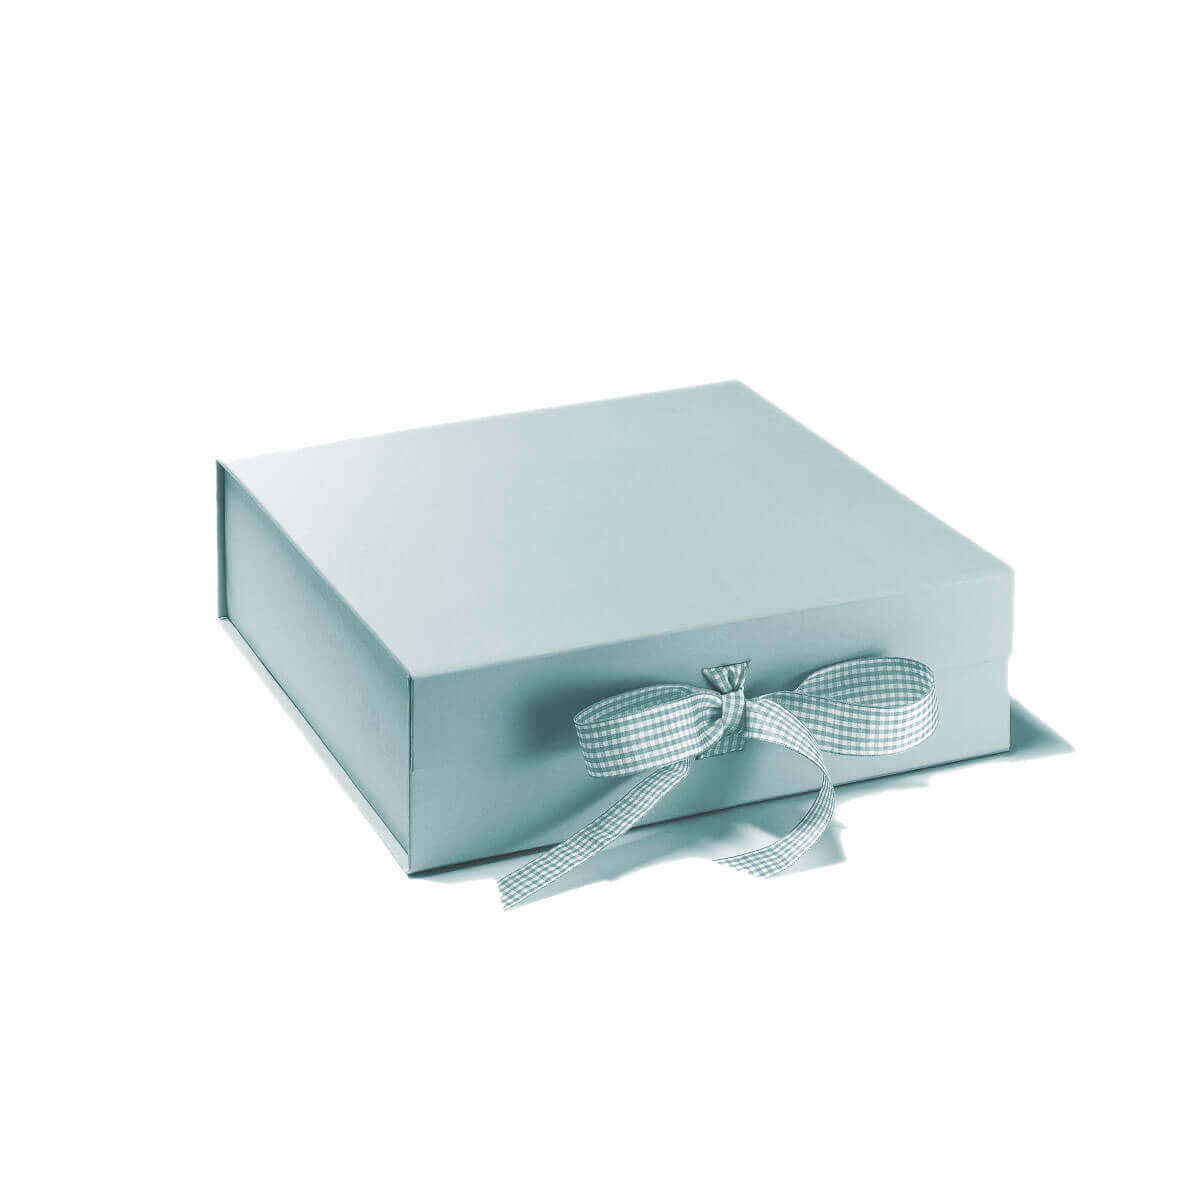 Custom Gift Boxes Gift Packaging Boxes Wholesale Deluxeboxes